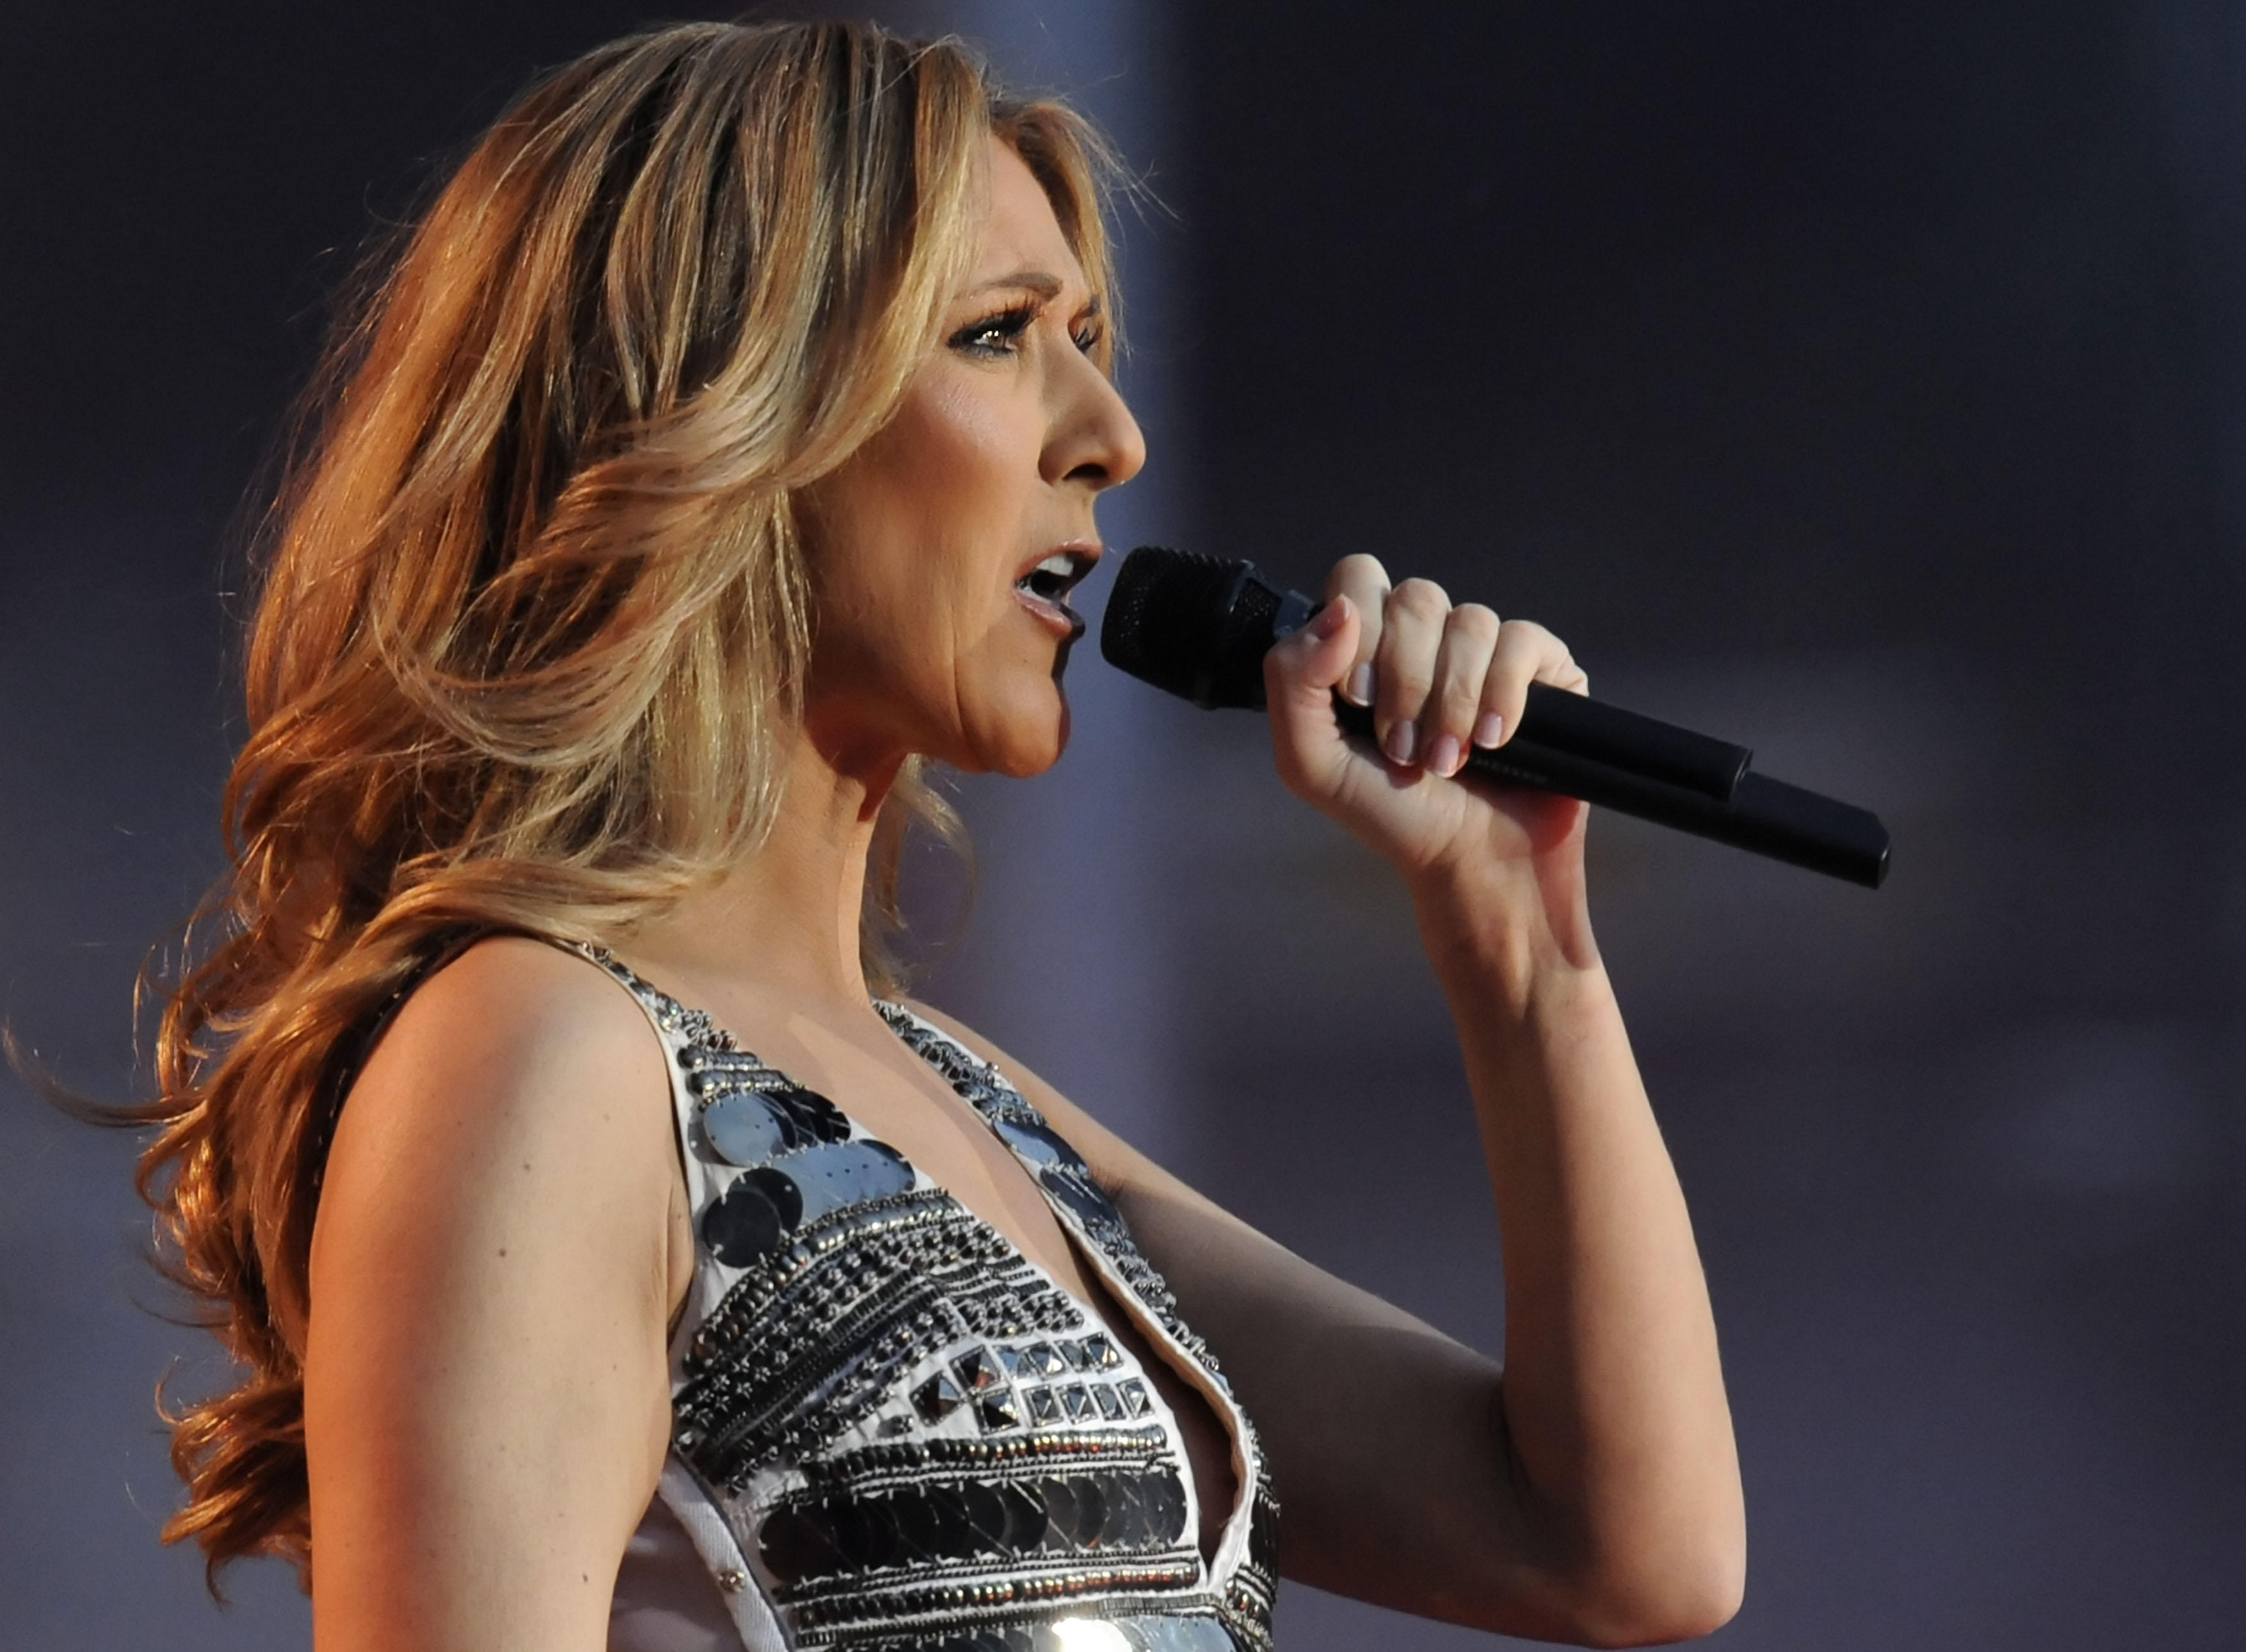 Celine Dion singing with a microphone